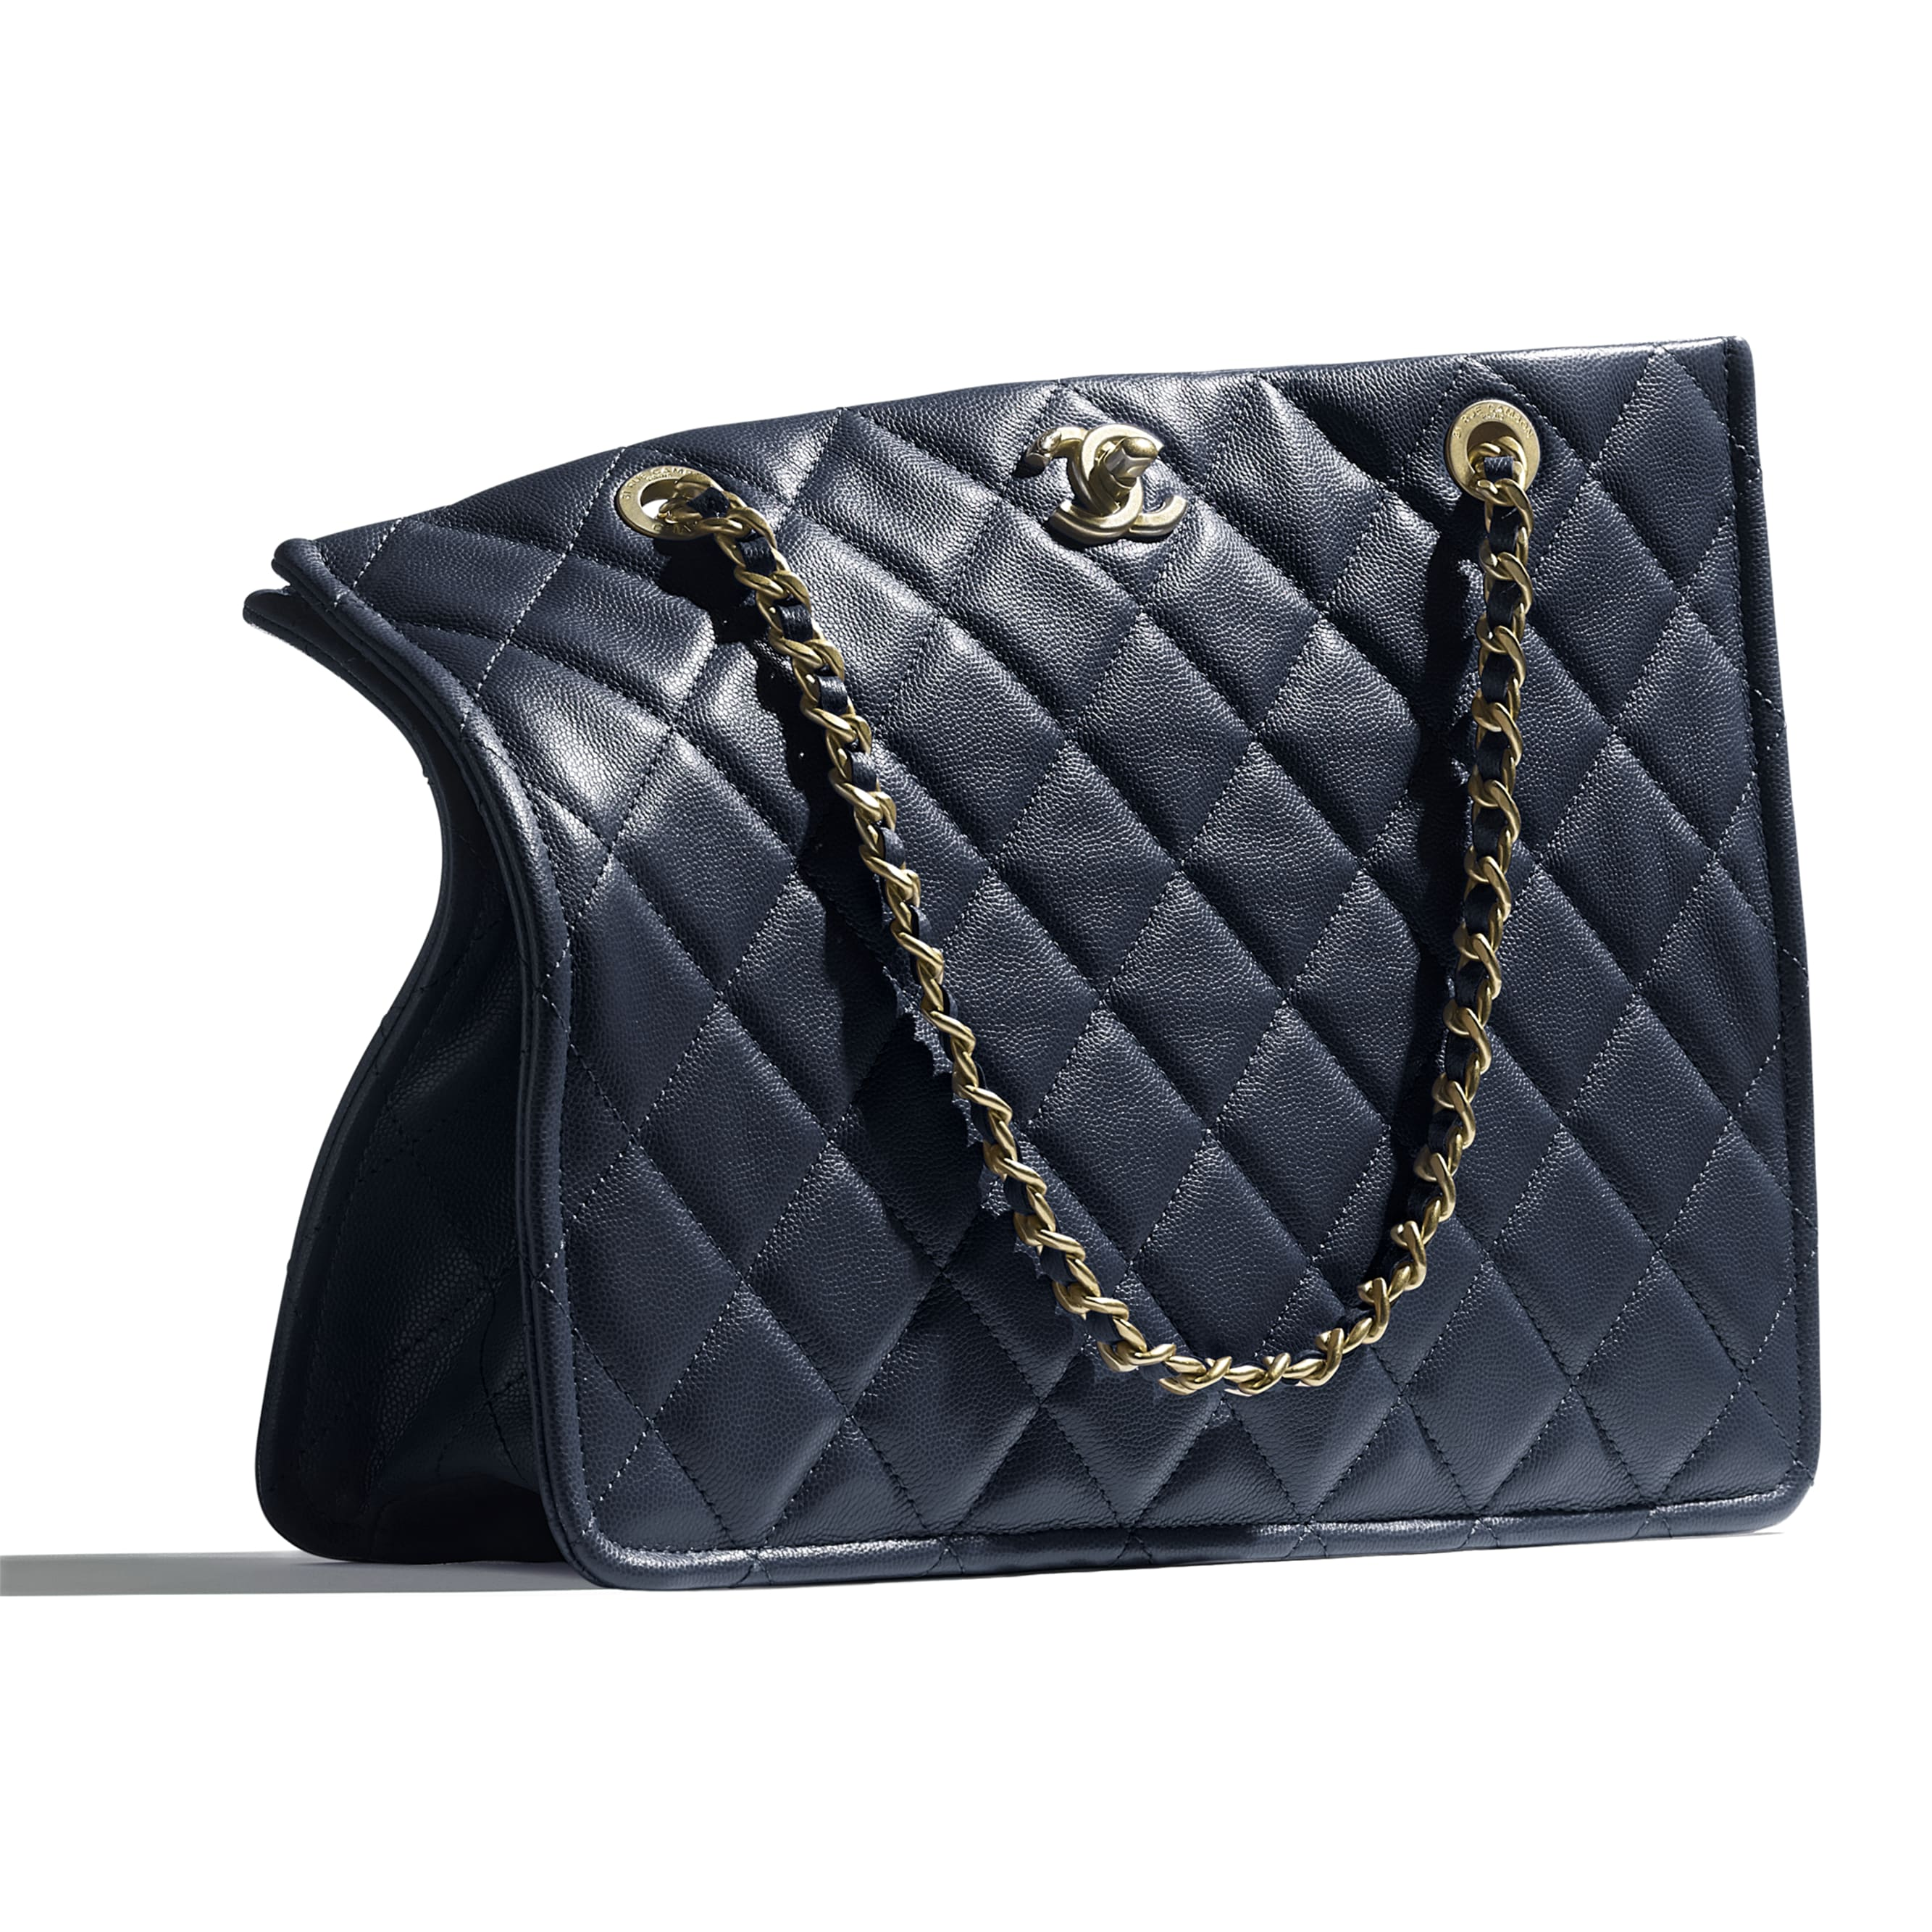 Large Tote - Navy Blue - Grained Calfskin & Gold-Tone Metal - CHANEL - Extra view - see standard sized version